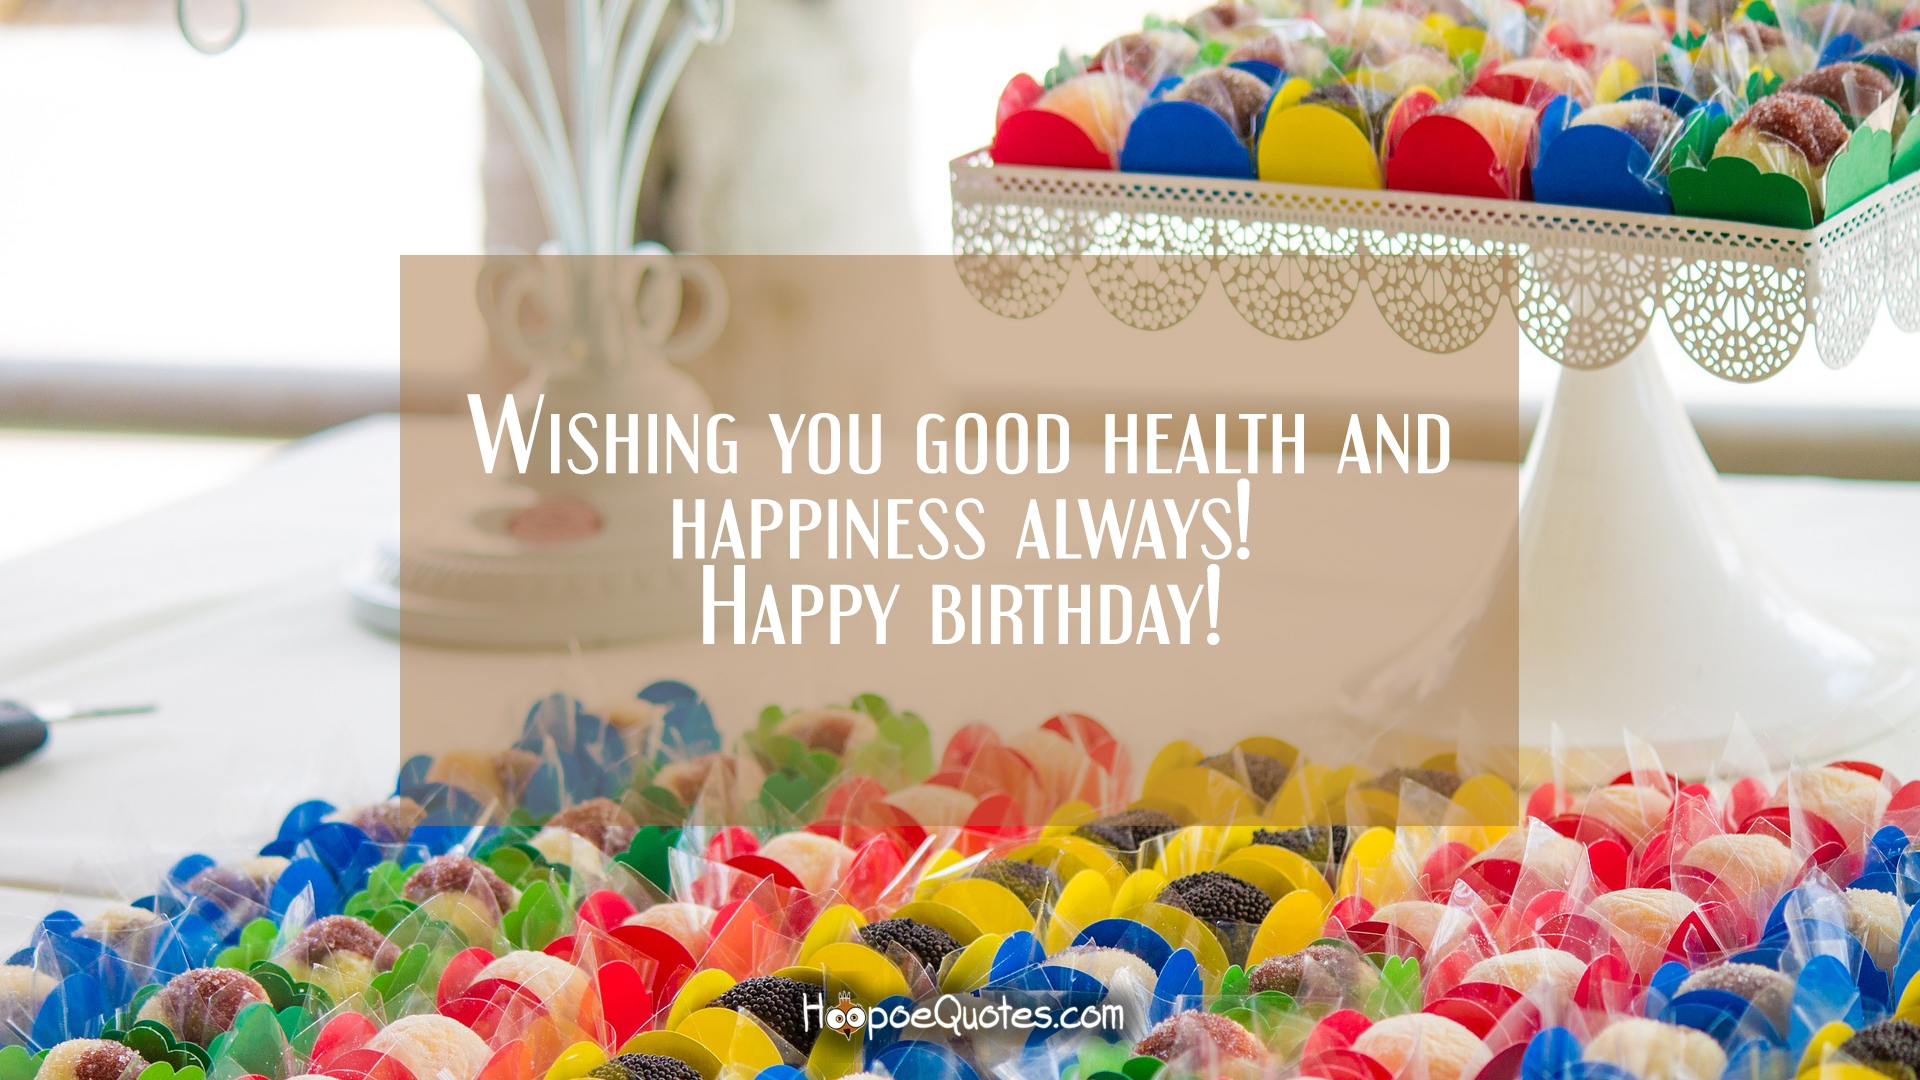 Wishing You Good Health And Happiness Always Happy Birthday